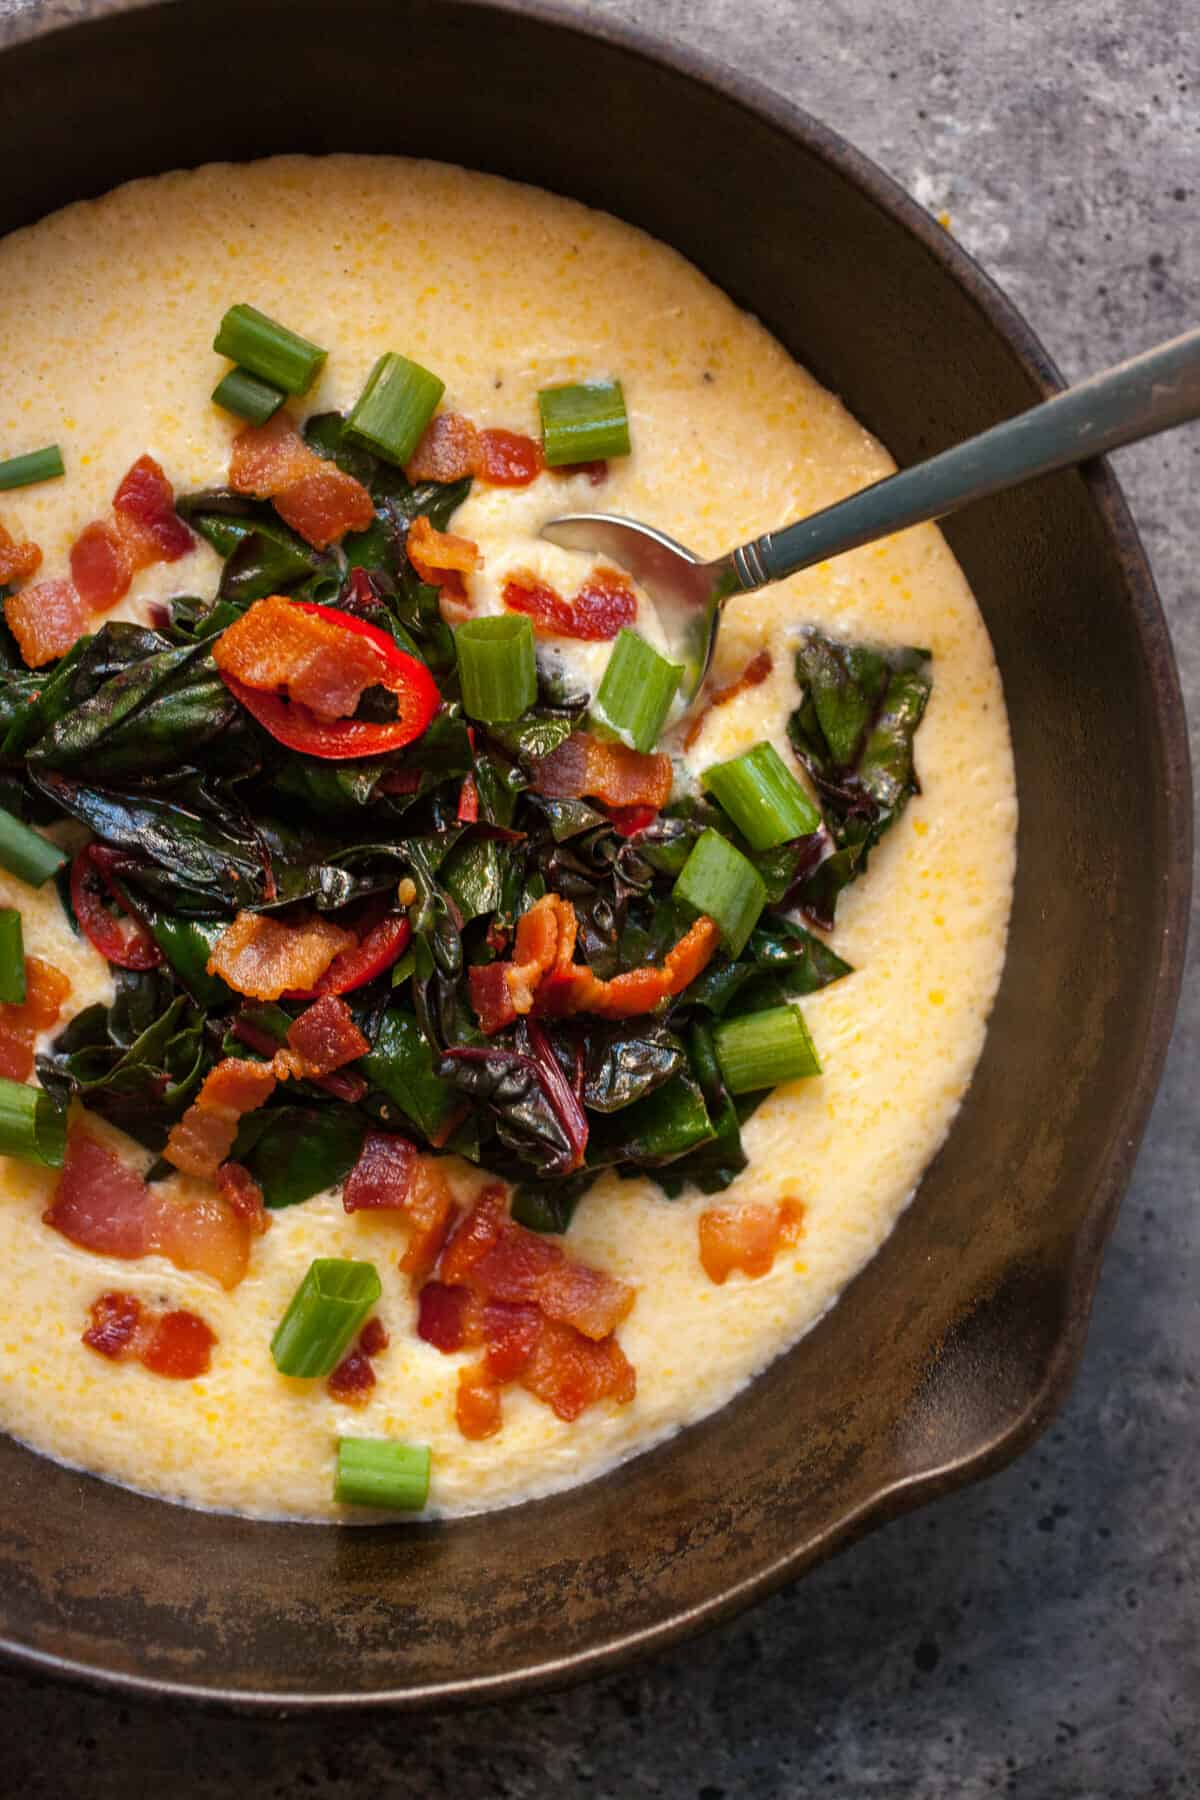 Chard and Bacon Polenta Bowls: These are perfect bowls for a cool winter night. Warming, delicious polenta topped with sauteed chard, bacon bits, and spicy peppers. YUM. | macheesmo.com